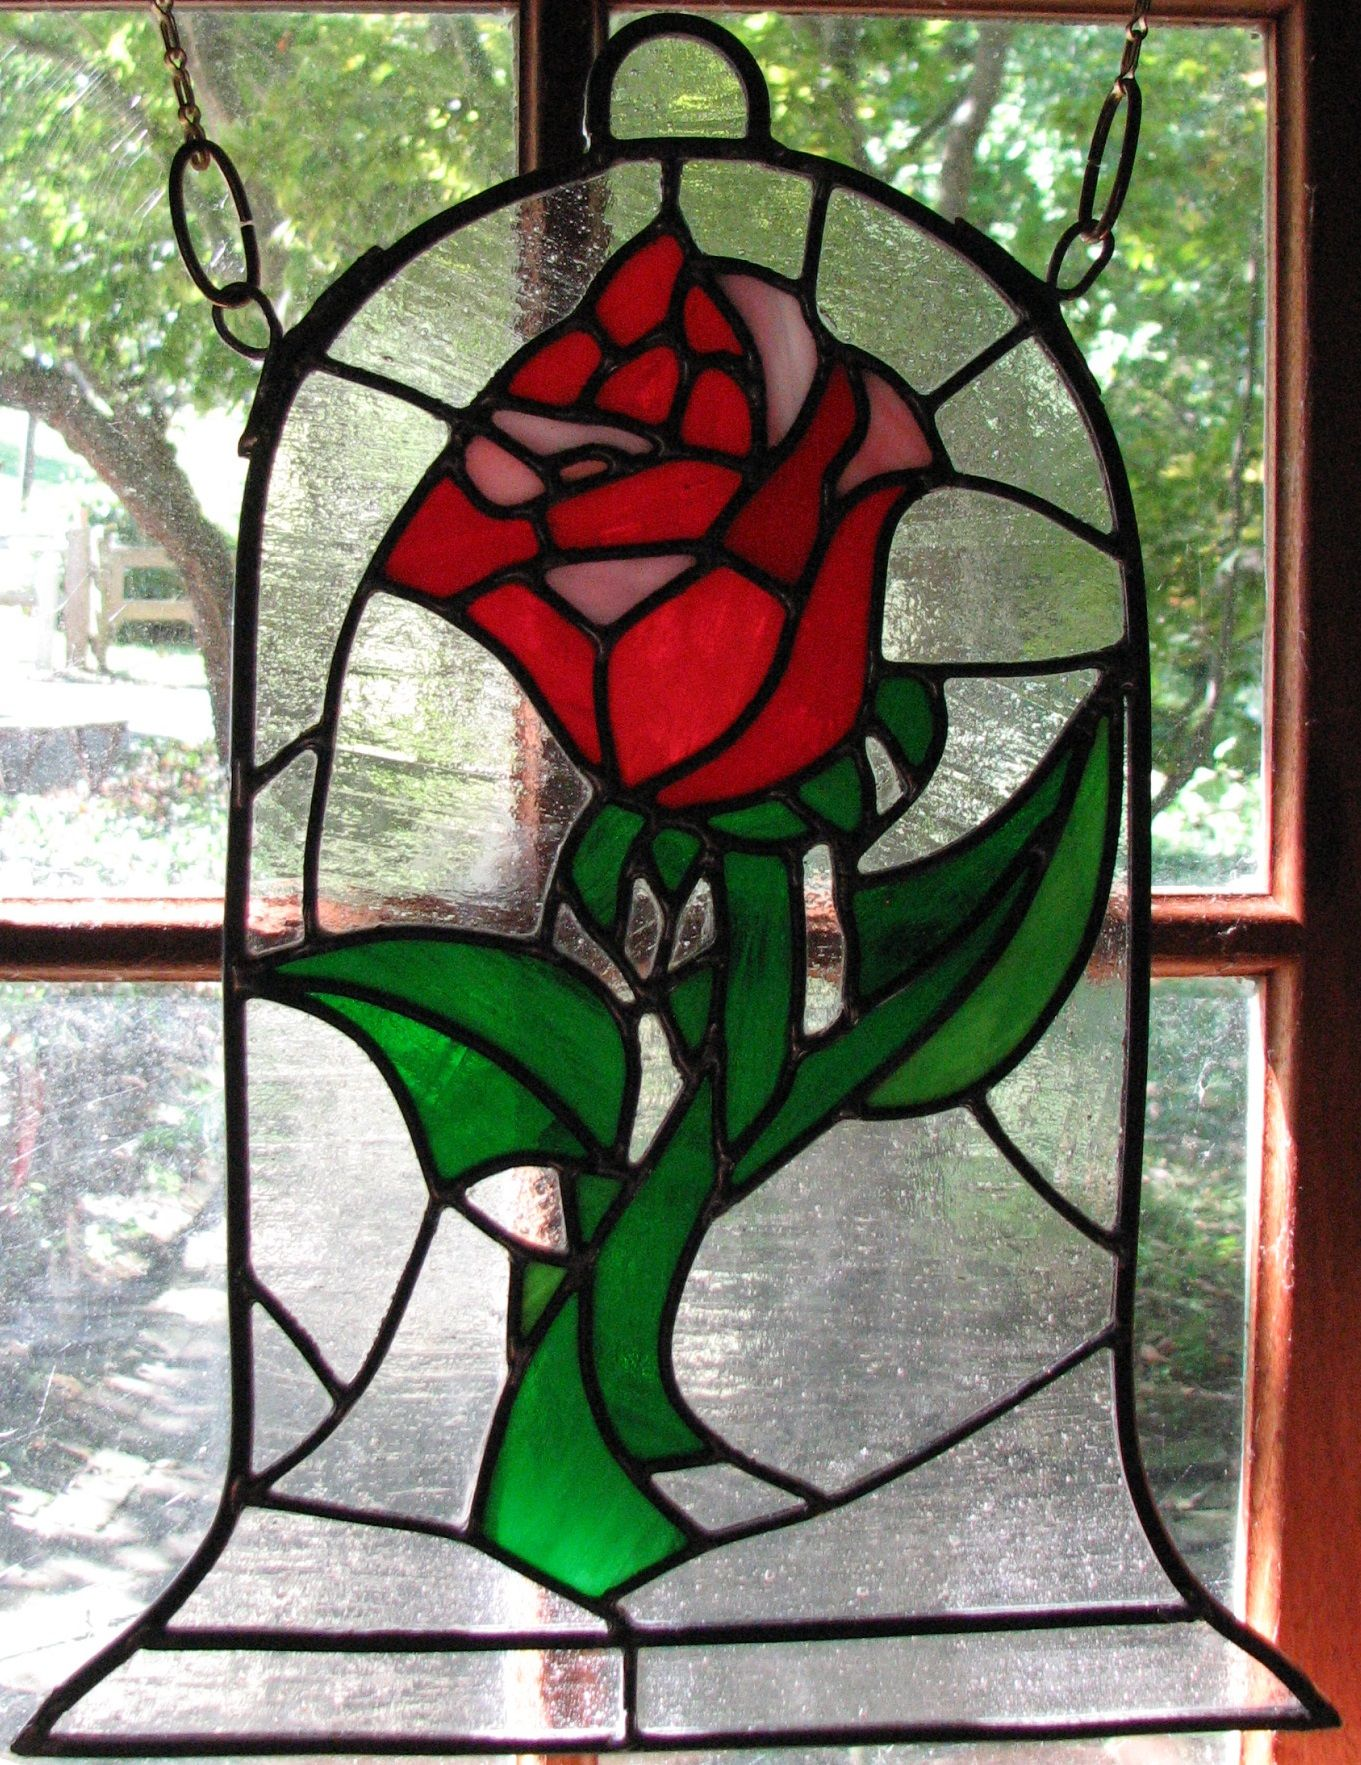 Beauty And The Beast Rose Stained Glass By Autobotwonko D99Ui5U (1361 1765)